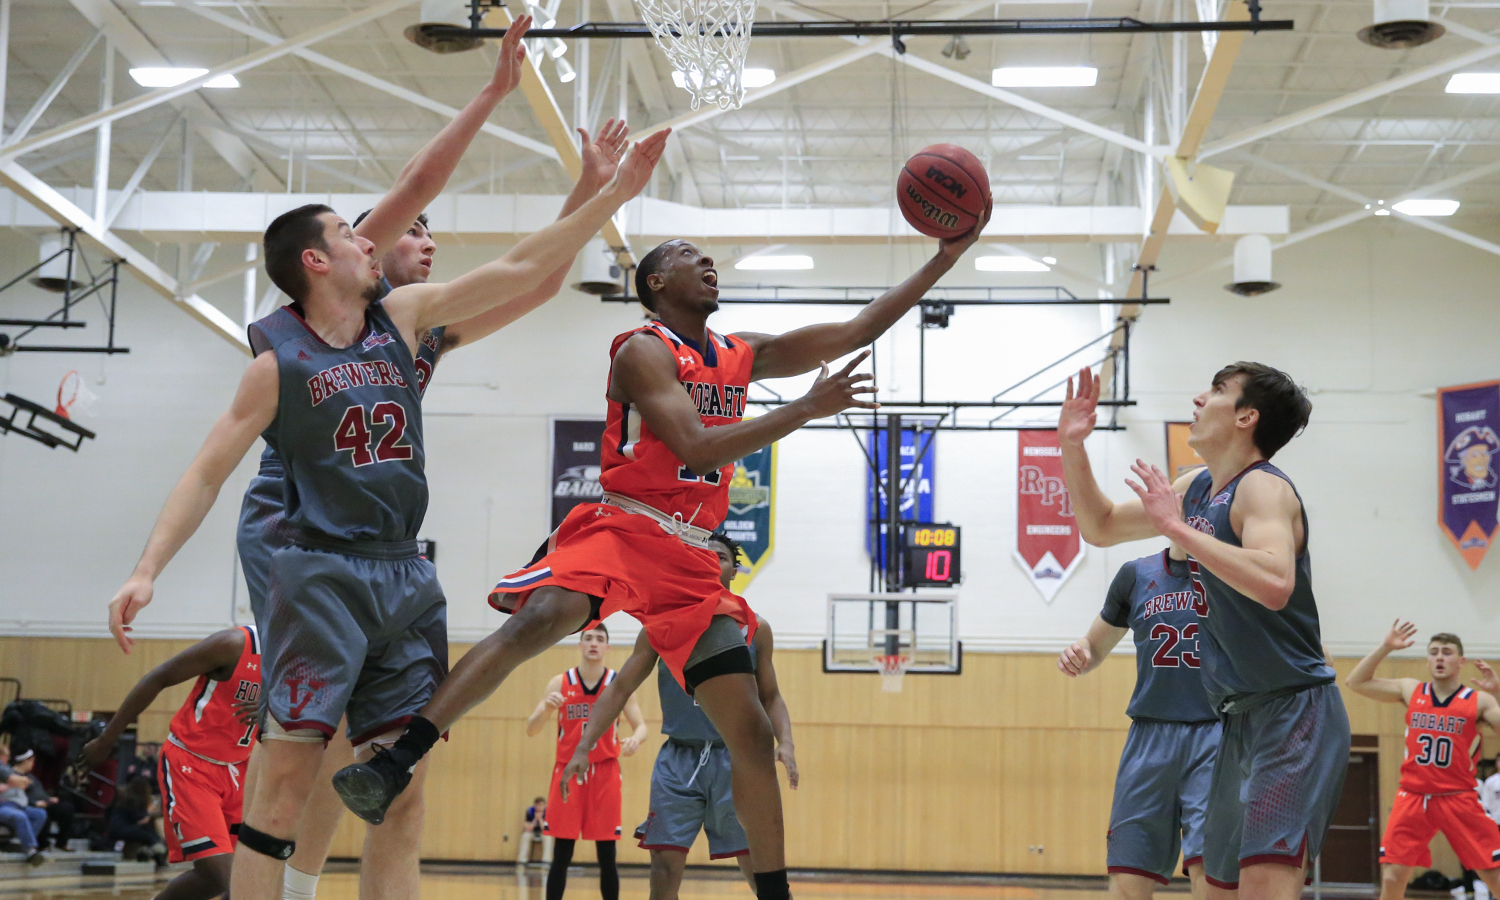 Jamal Lucas '19 makes a layup during Hobart's 79-74 win over Vassar College.